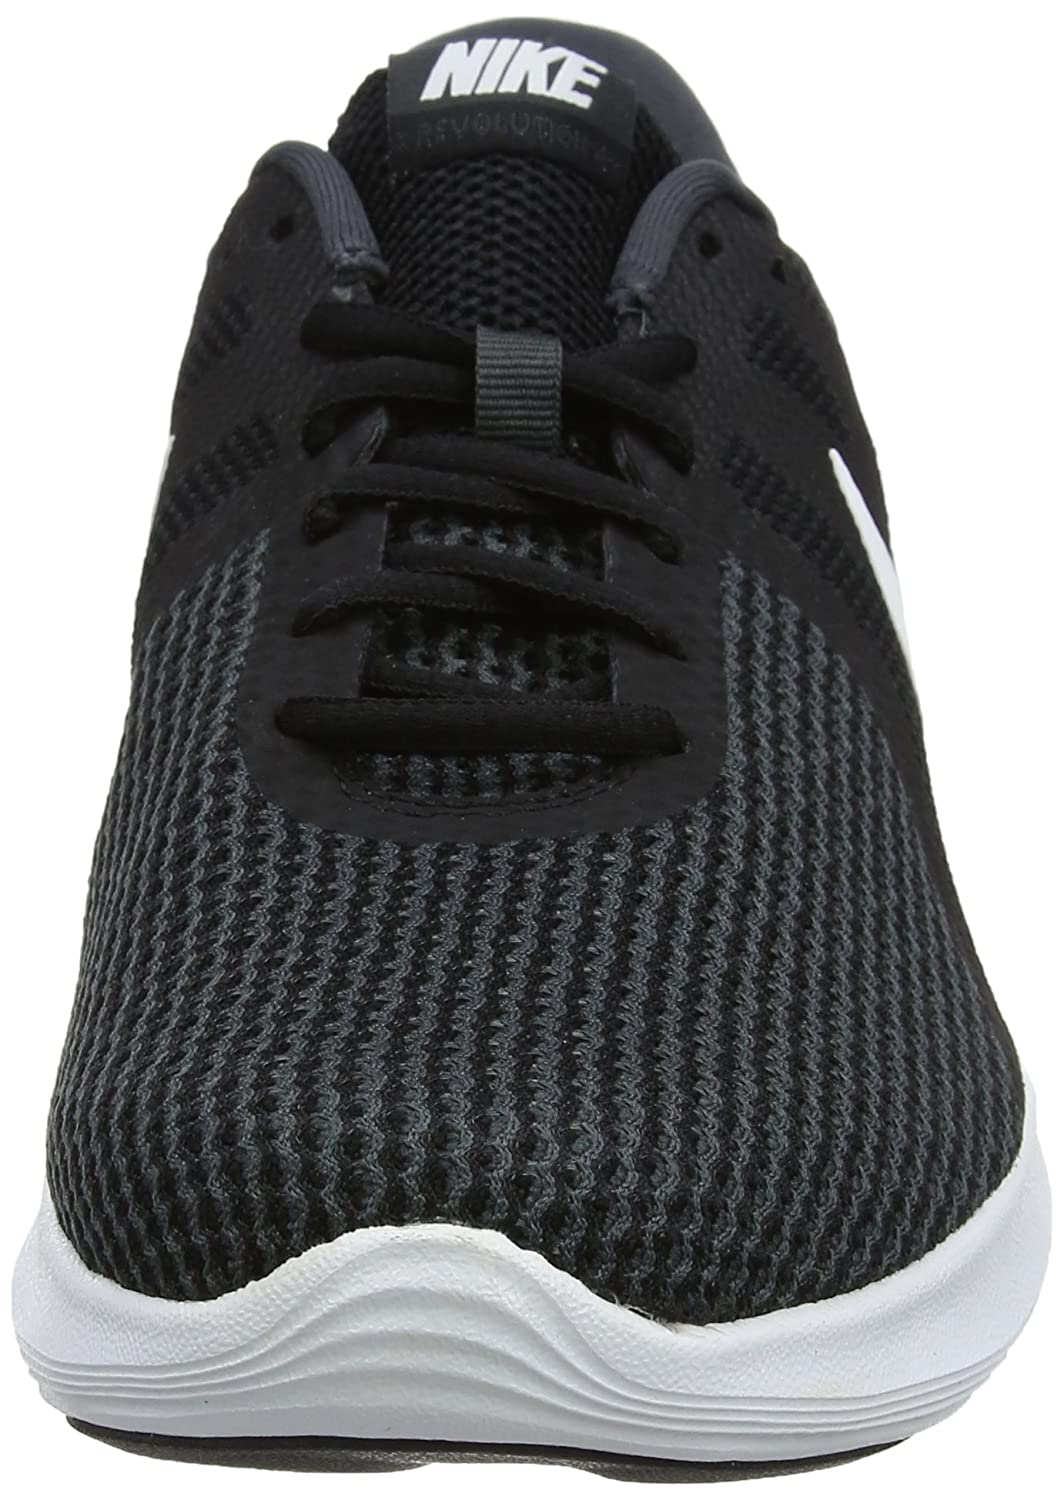 low priced 29c04 e3b38 Nike Men s s Revolution 4 EU Running Shoes  Amazon.co.uk  Shoes   Bags